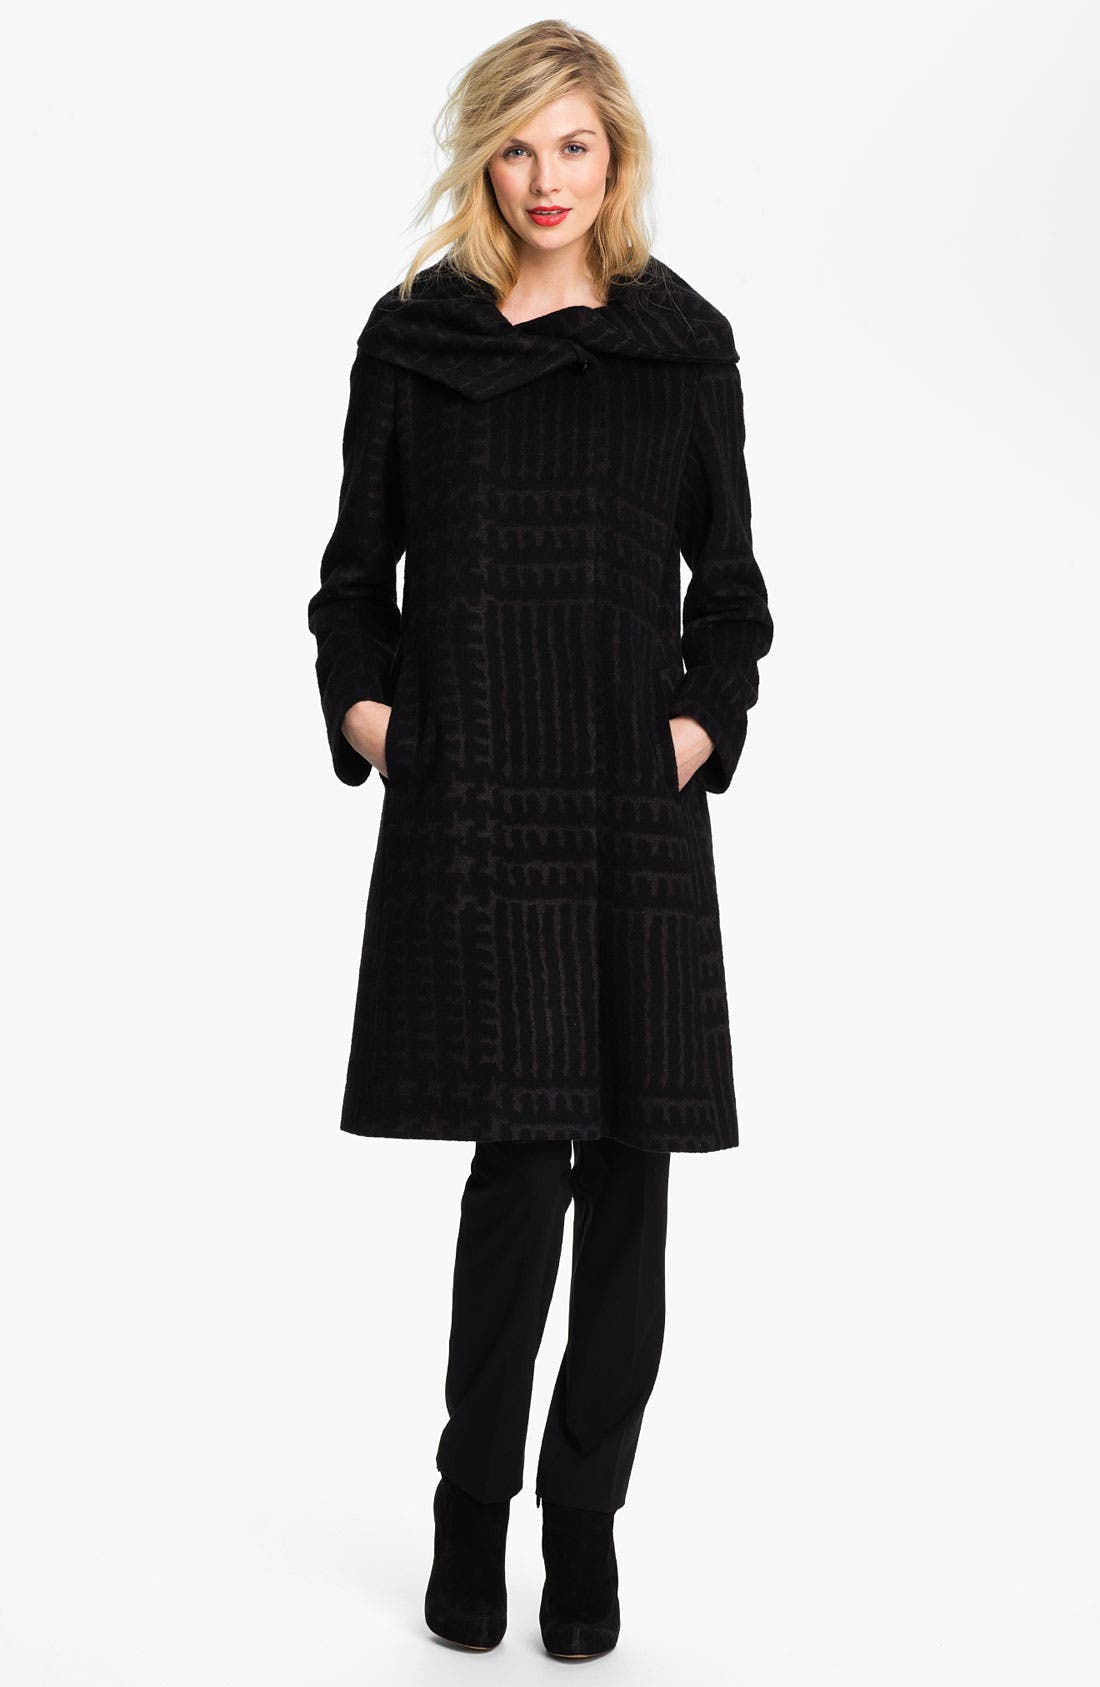 Main Image - Cinzia Rocca Patterned Wool Blend Coat